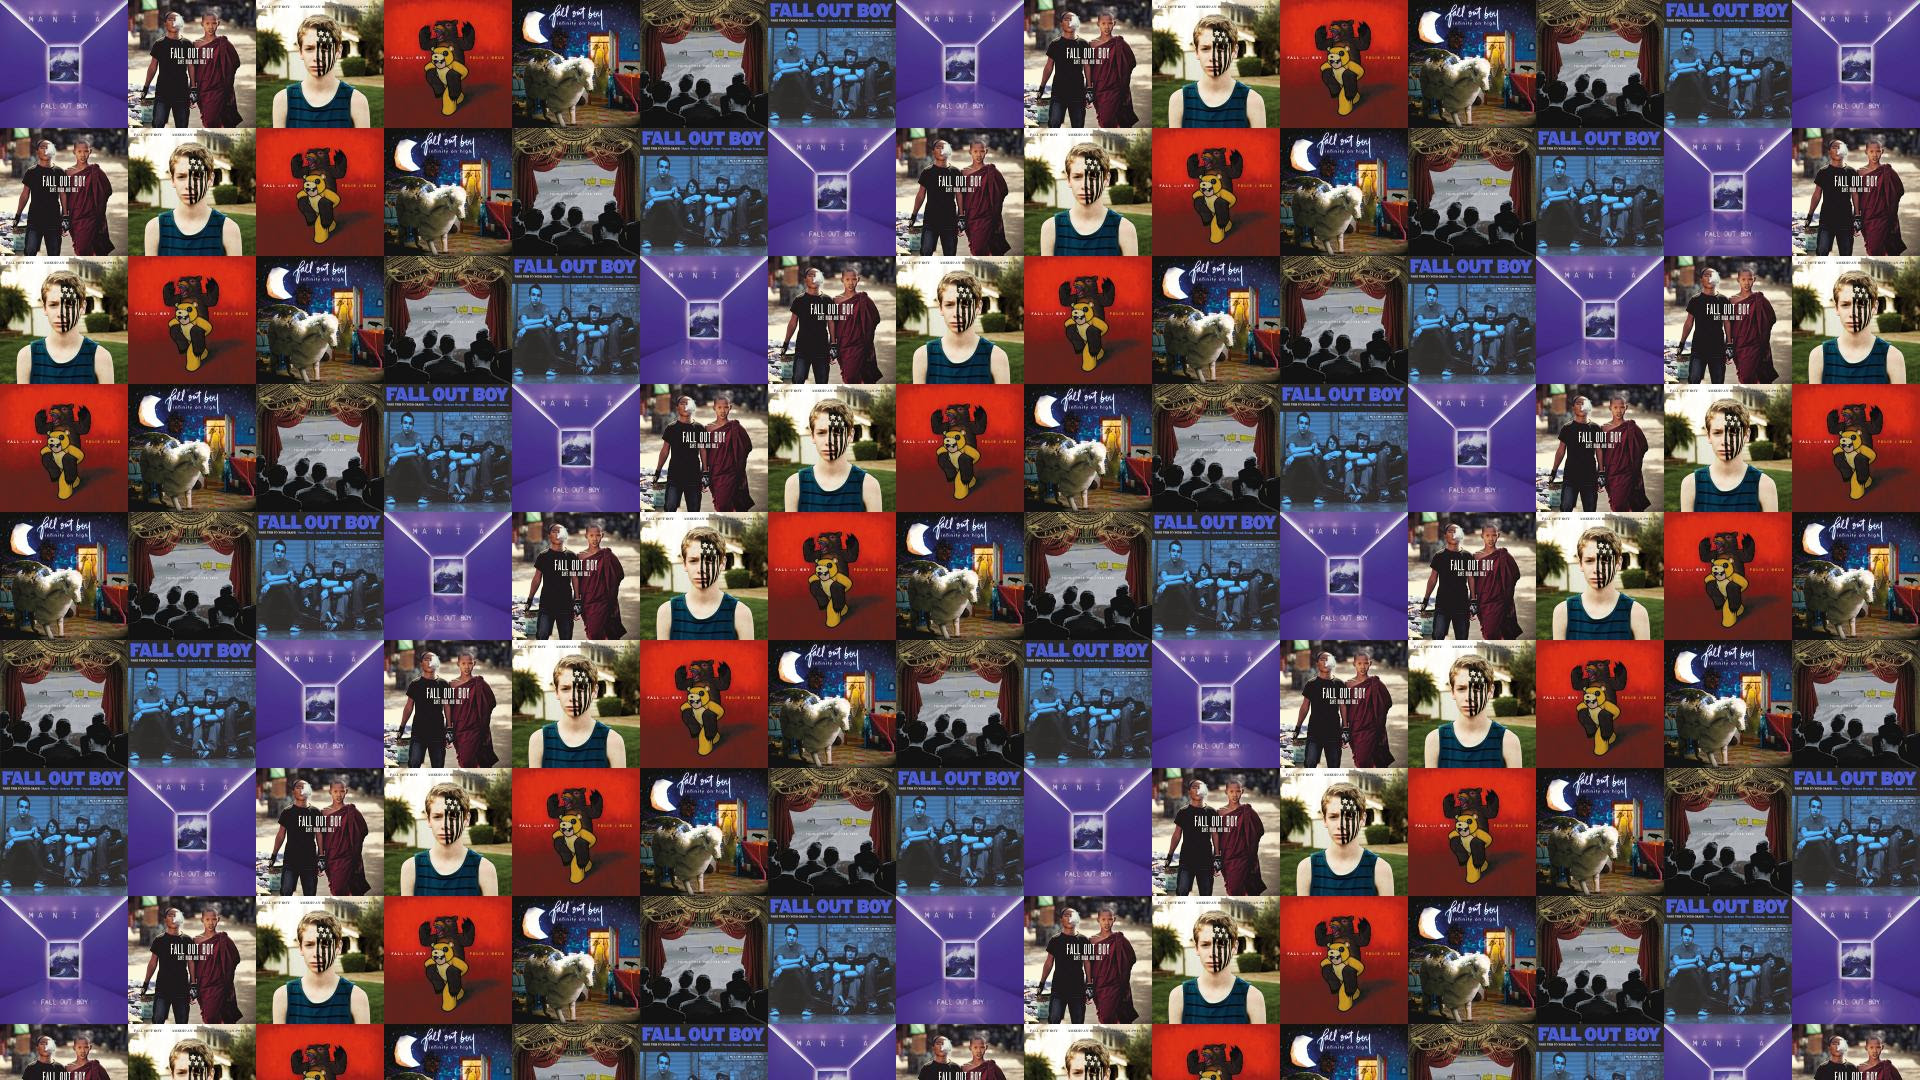 Fall Out Boy Mania Save Rock Roll American Wallpaper Tiled